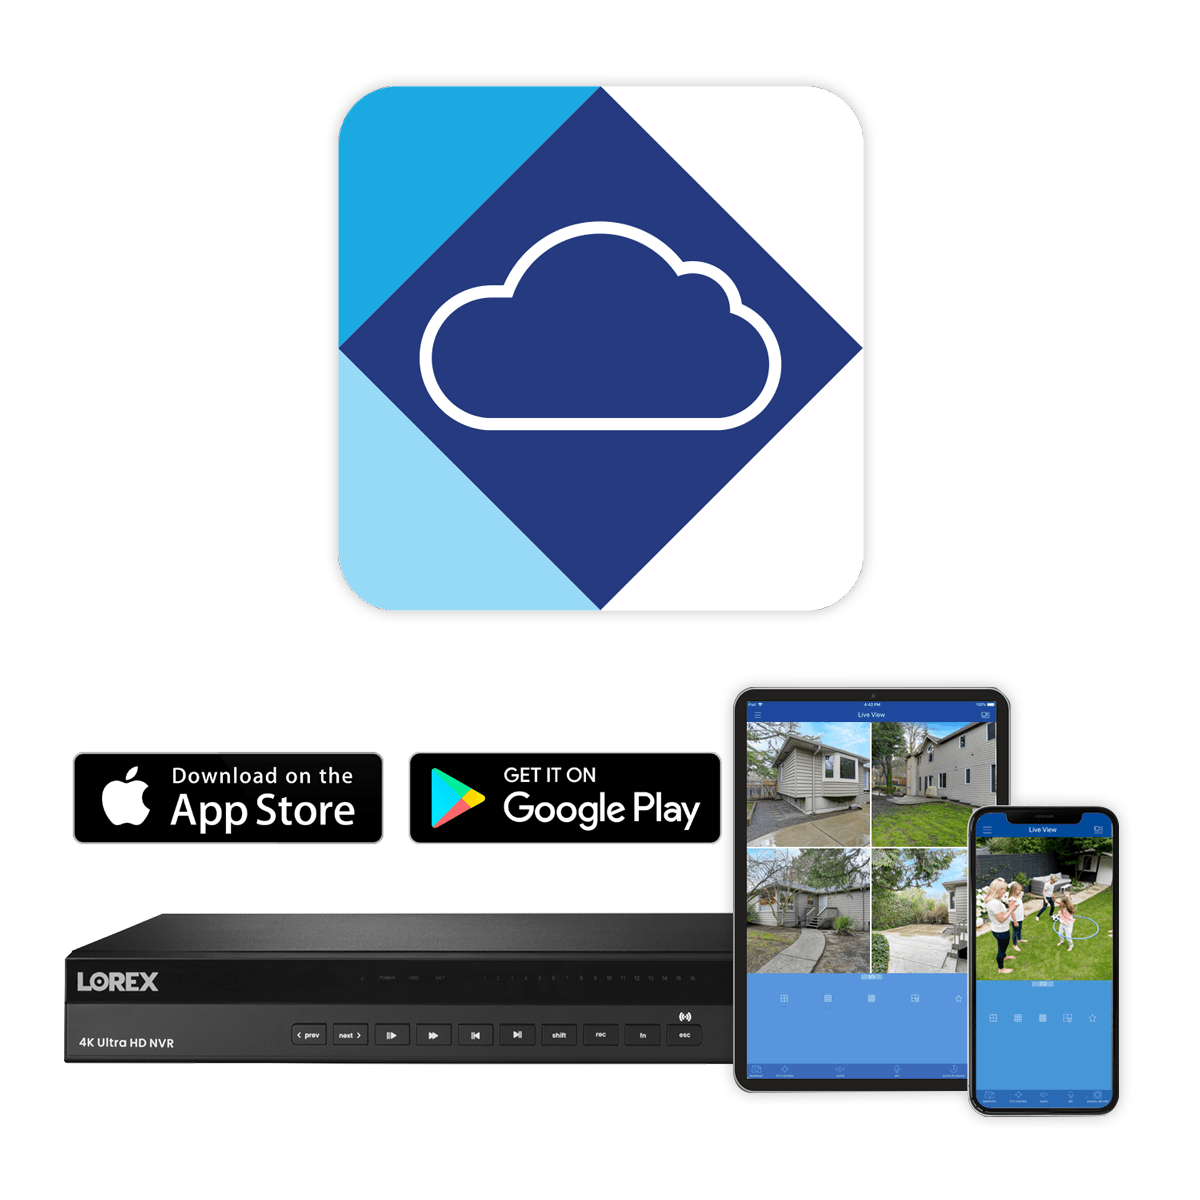 view live security video with NR900 Lorex Cloud App